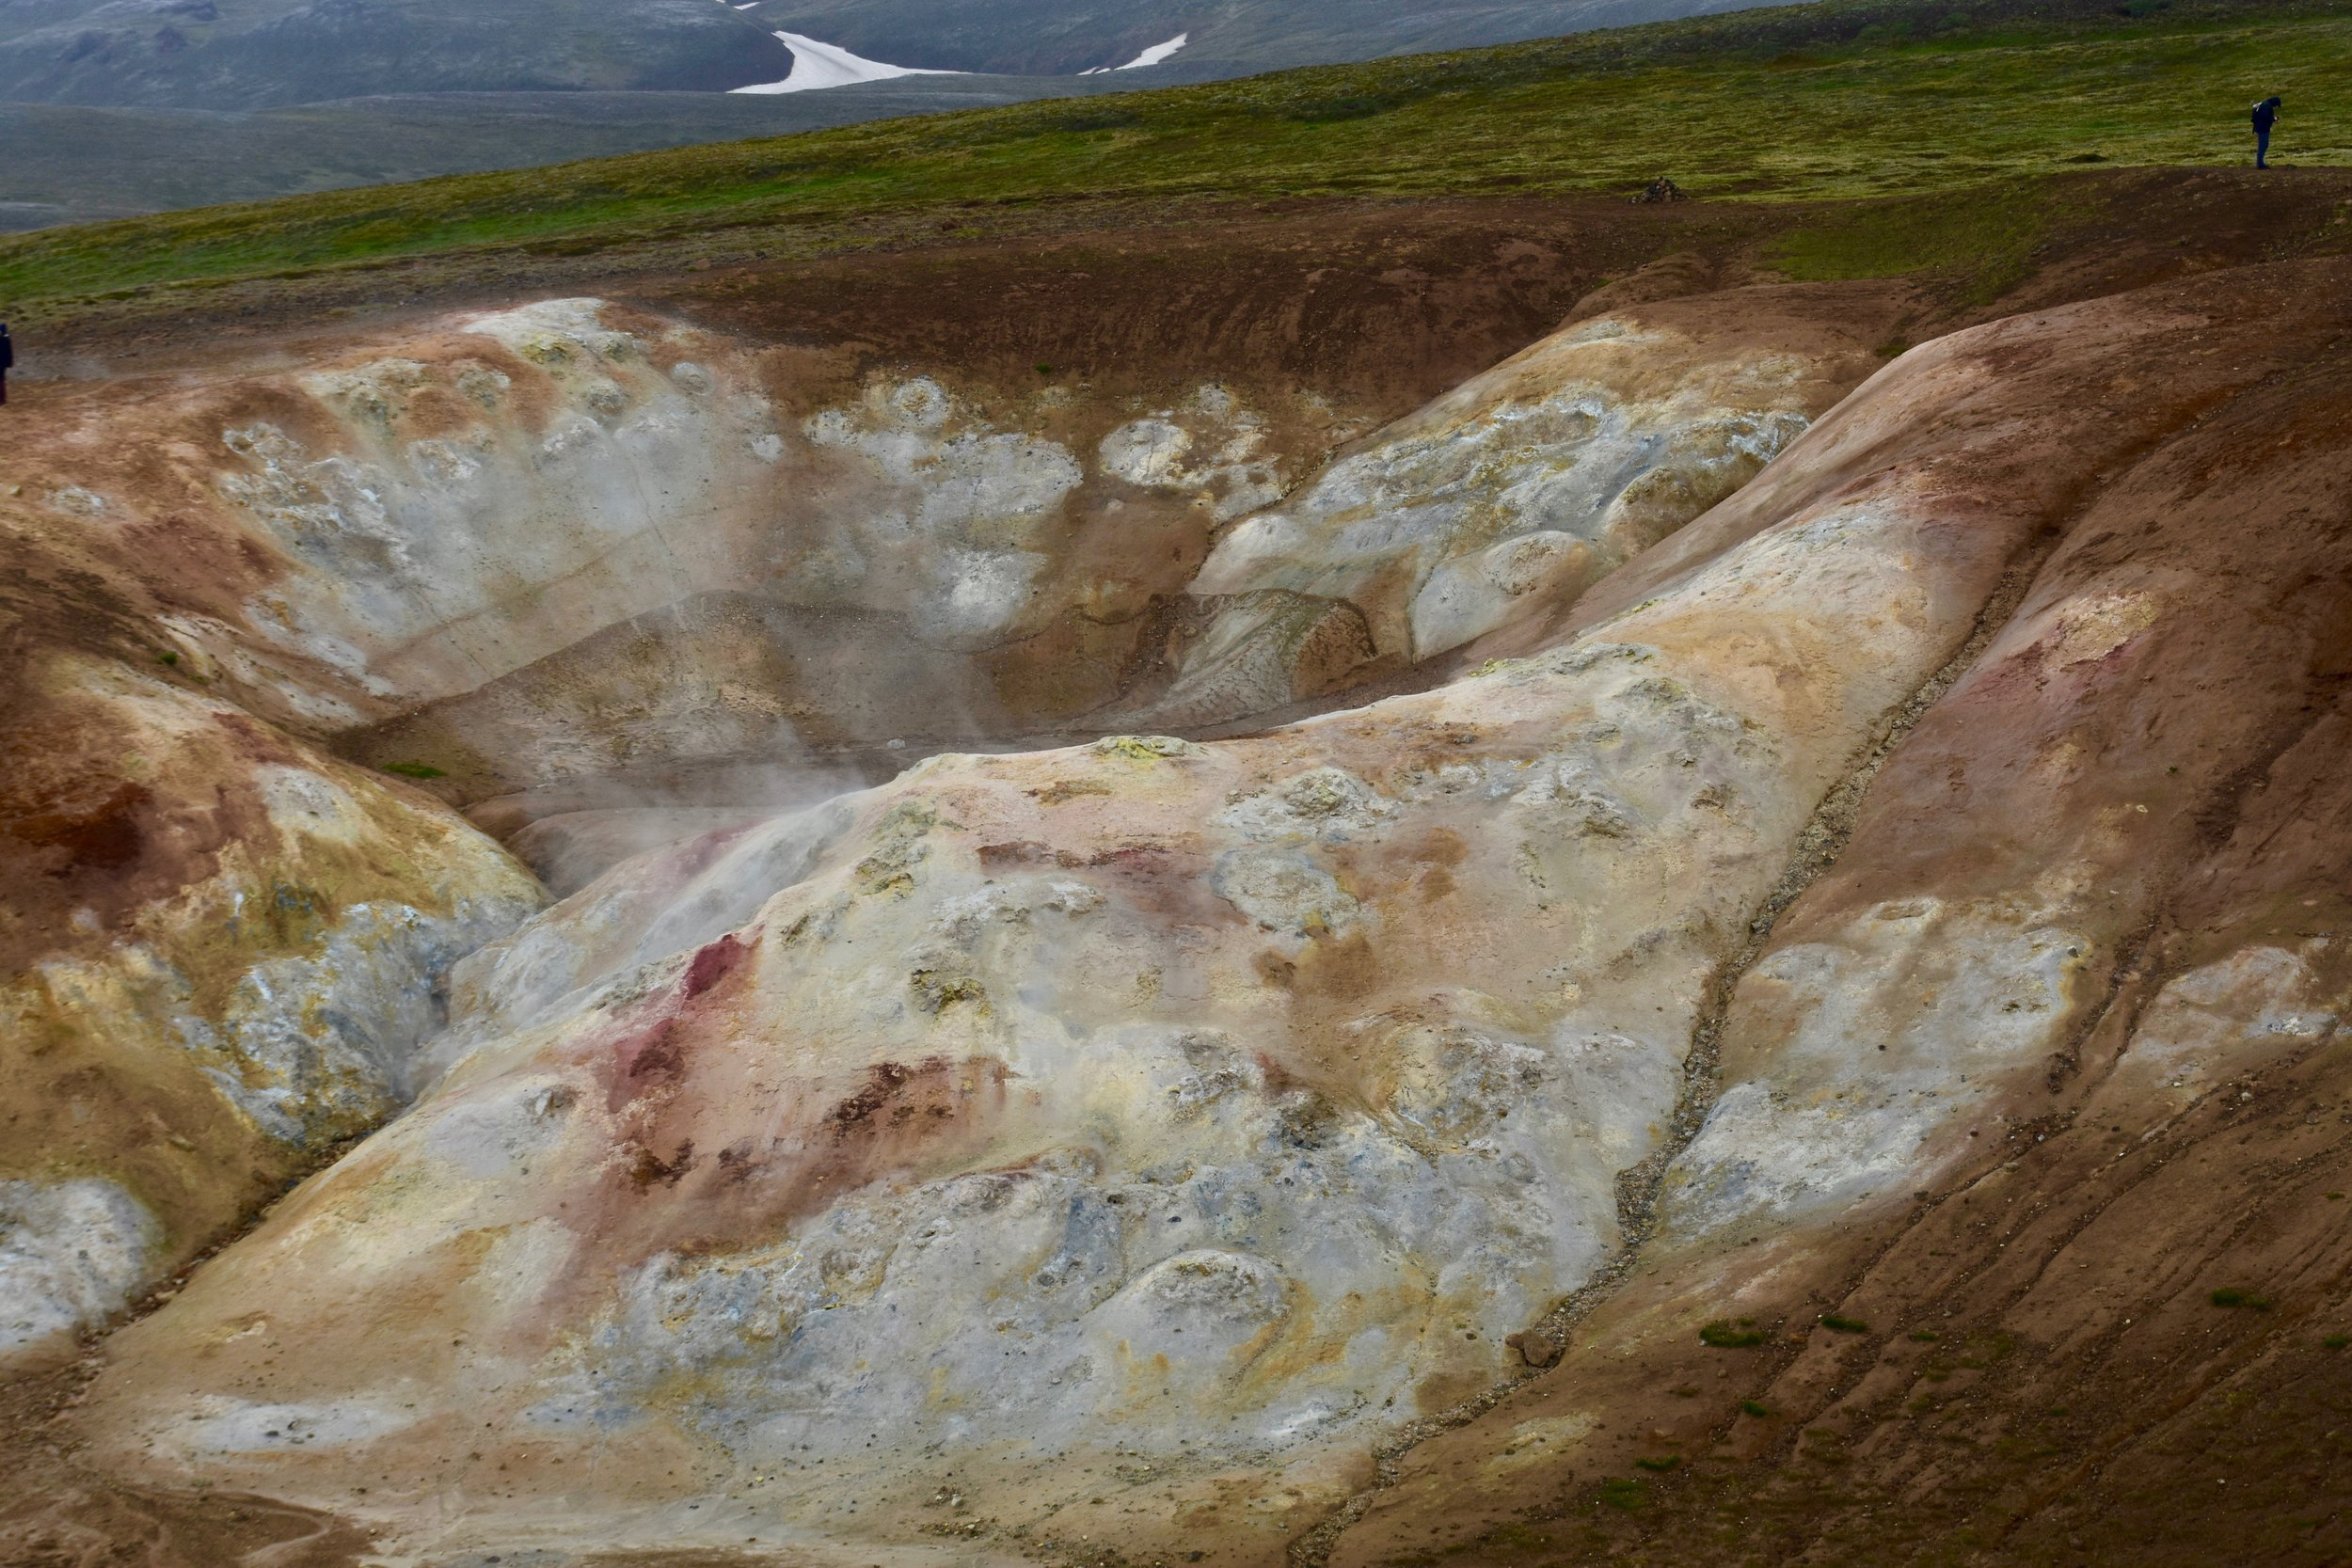 Viti Crater in Krafla geothermal area in Northeast Iceland